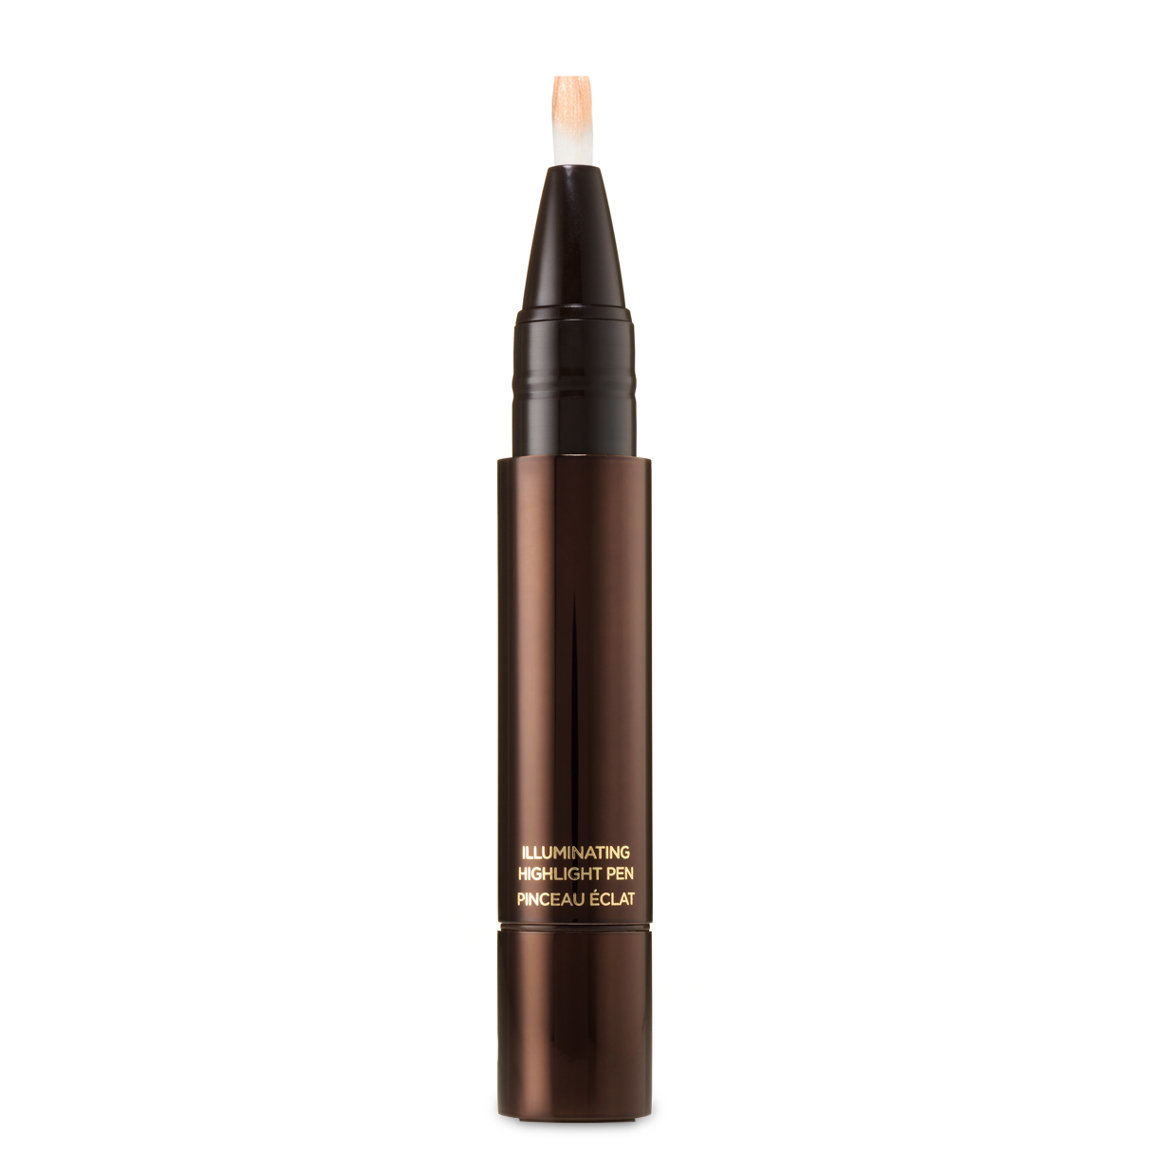 TOM FORD Illuminating Highlight Pen Naked Bisque alternative view 1.